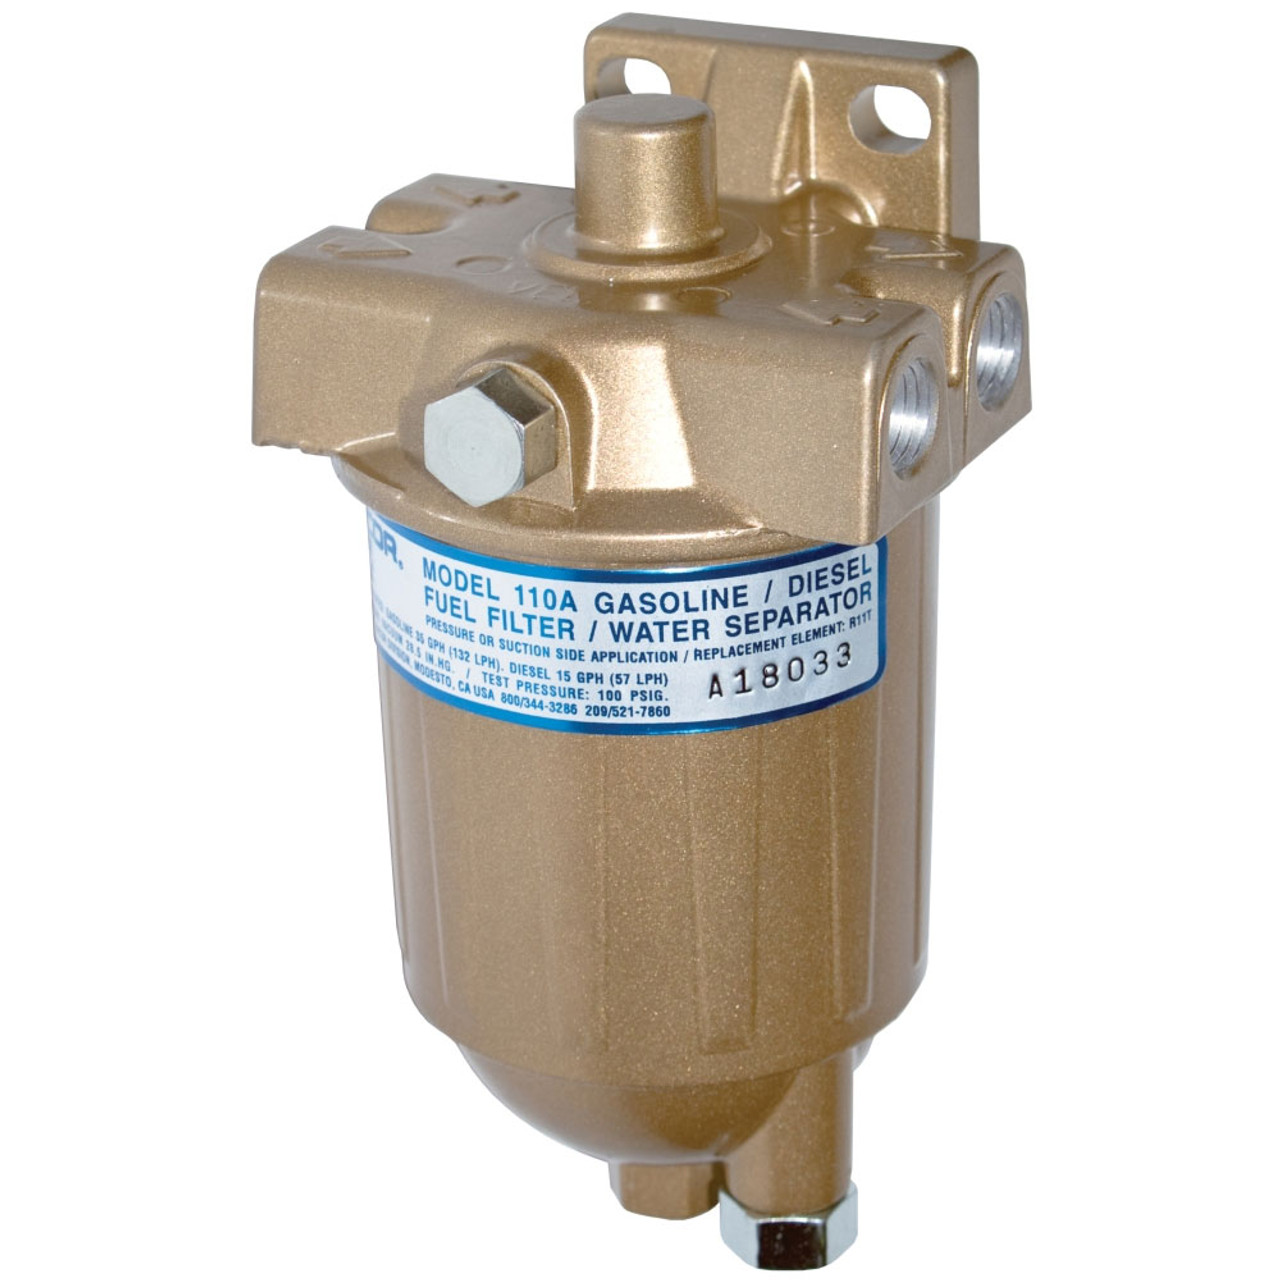 medium resolution of racor 110a series low flow fuel filter water separator filter assembly 10 micron 6 qty john m ellsworth co inc